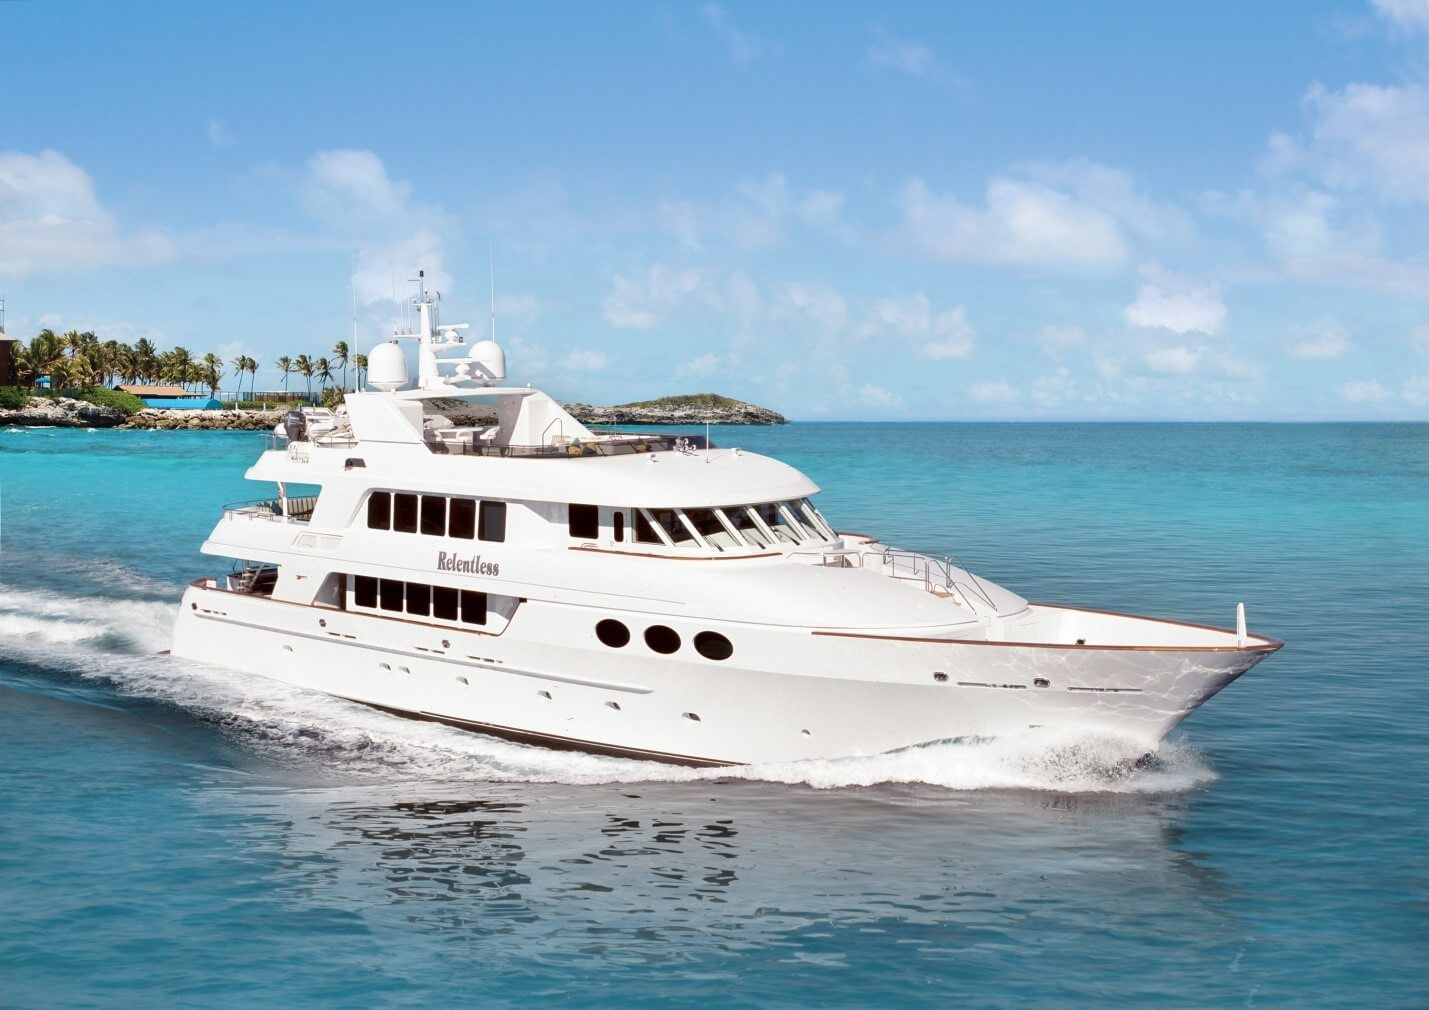 M/Y Bad Company & M/Y Relentless